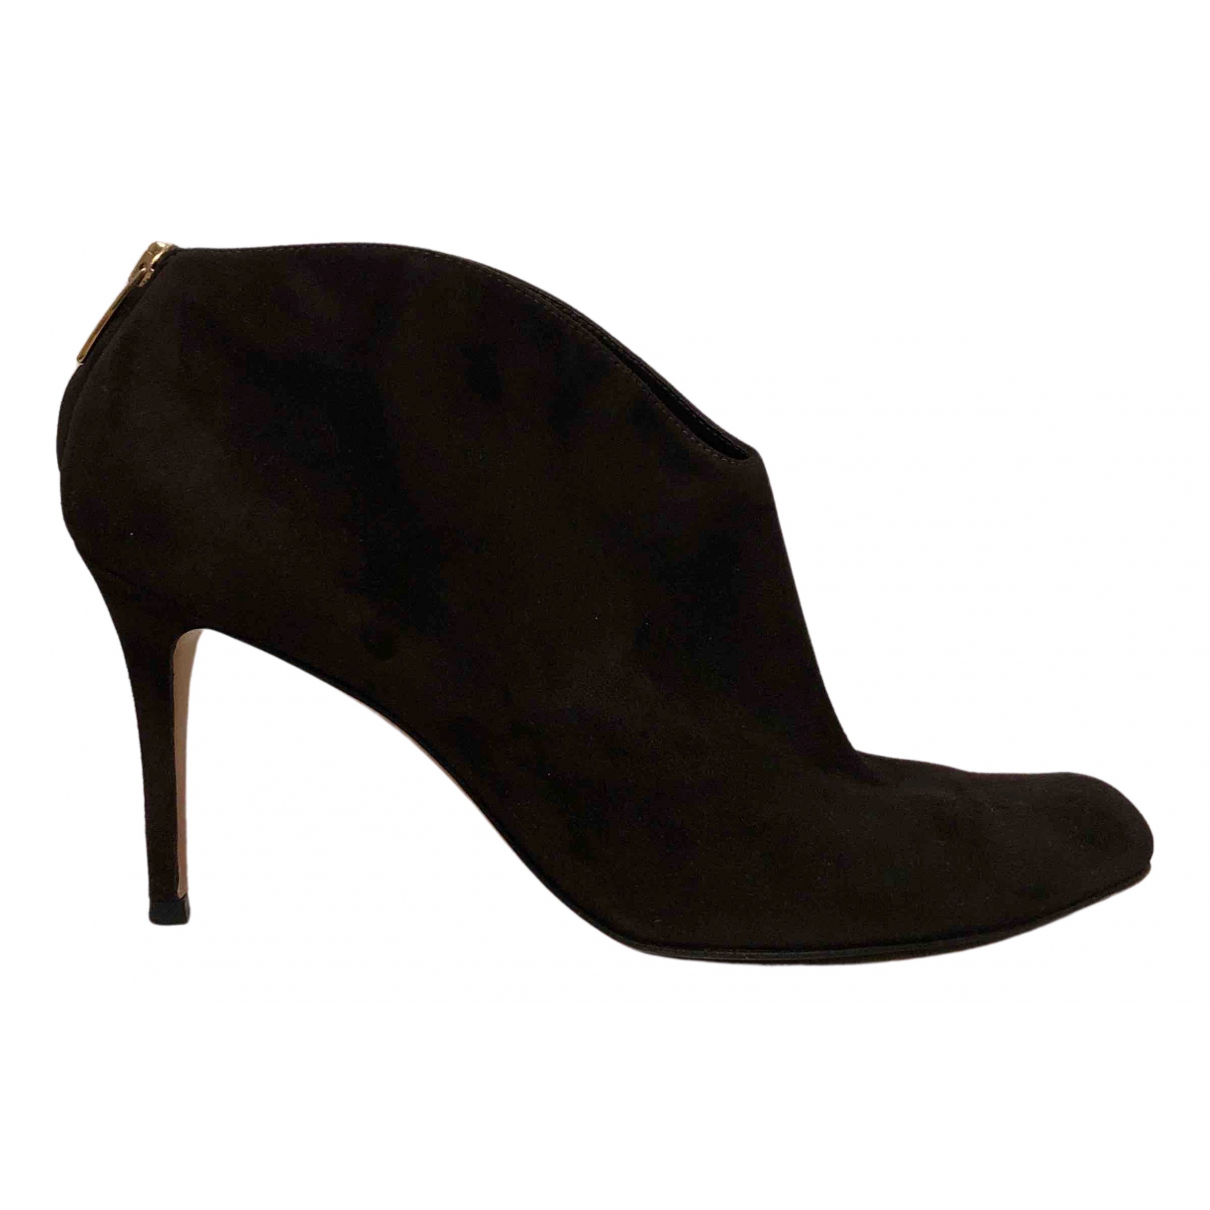 Gianvito Rossi N Brown Suede Ankle boots for Women 41 IT